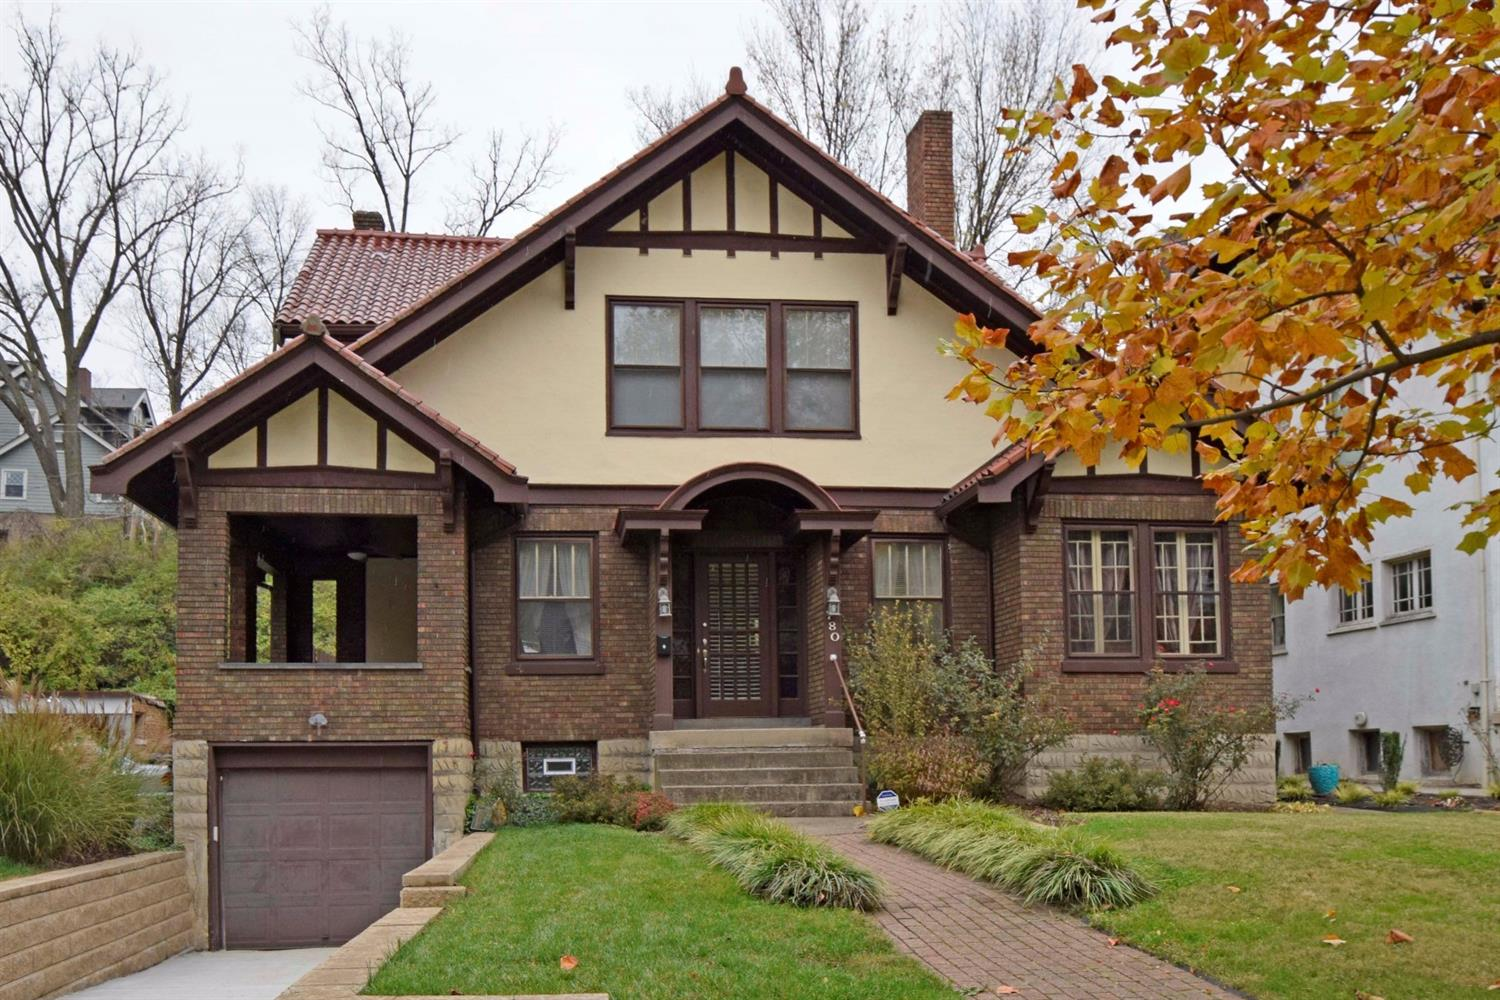 Charming home in historical Avondale. Gracious open floor plan that can be used in the eyes of the beholder. Spacious rooms w/9'+ ceilings. Private, flat, fenced rear yard. A must see!